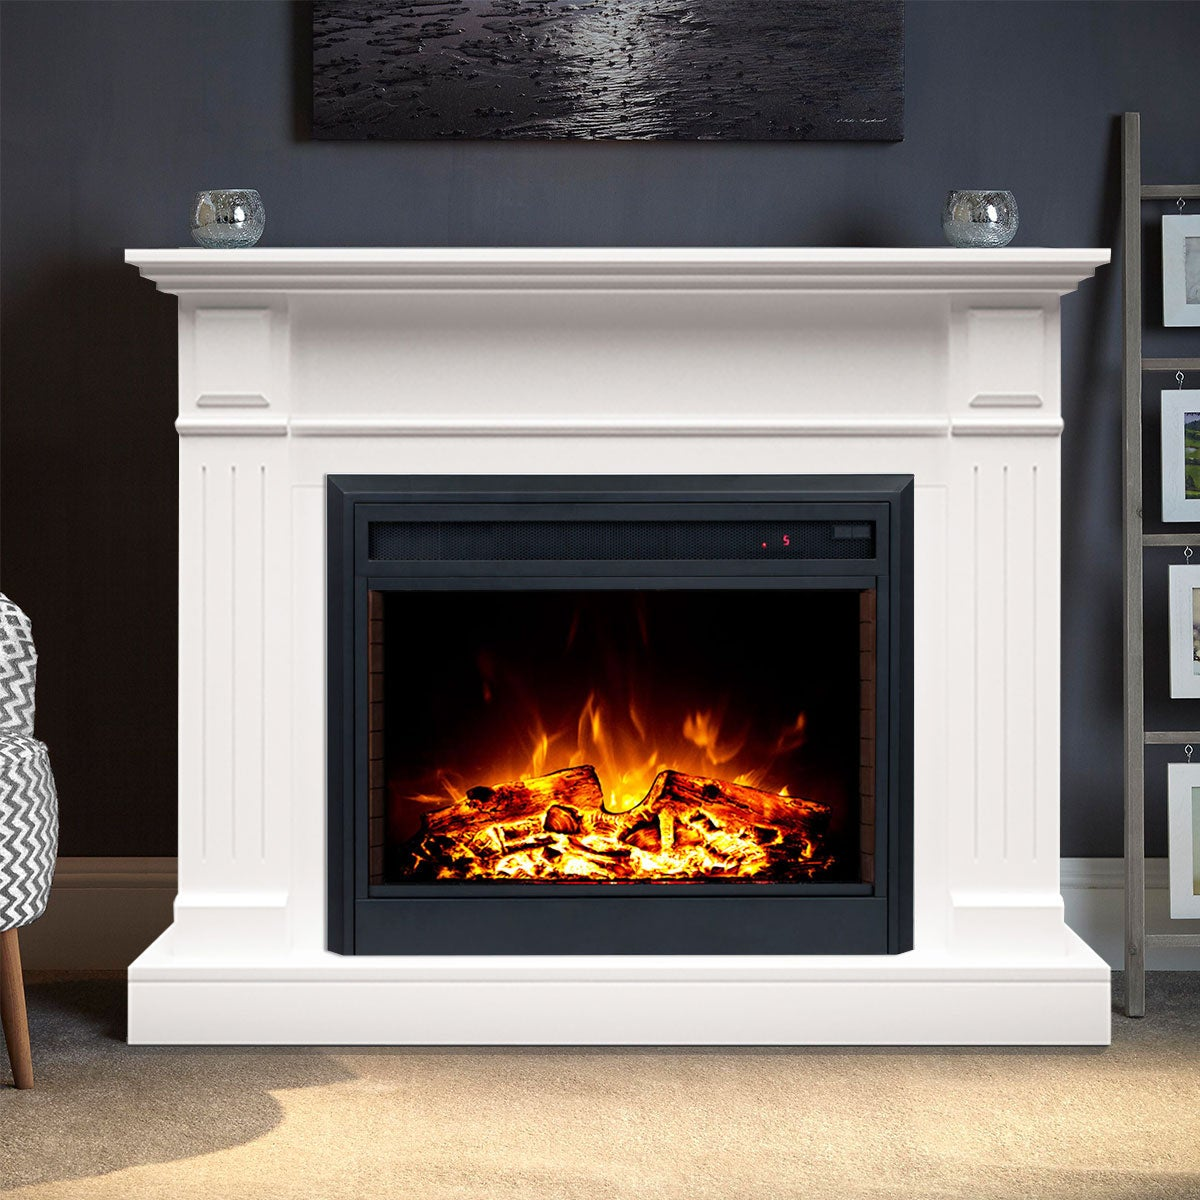 Berwick 2000w Electric Fireplace Heater Mantel Suite White Buy